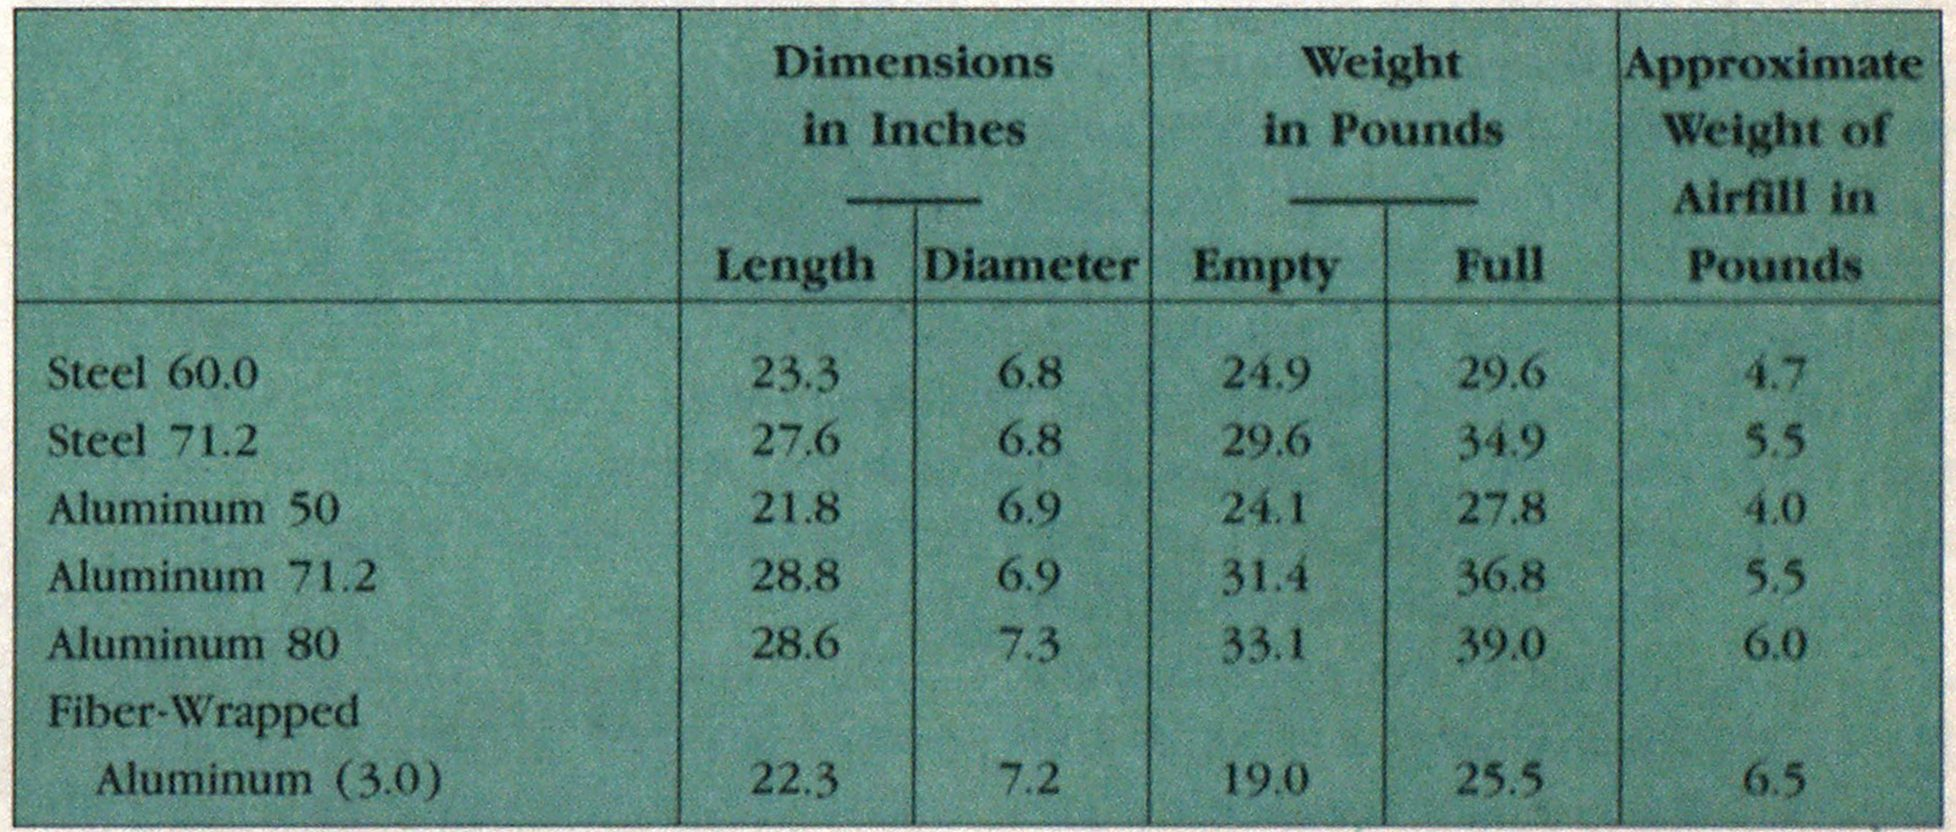 Figure 4: Physical characteristics of filled and unfilled cylinders found in the fire service.